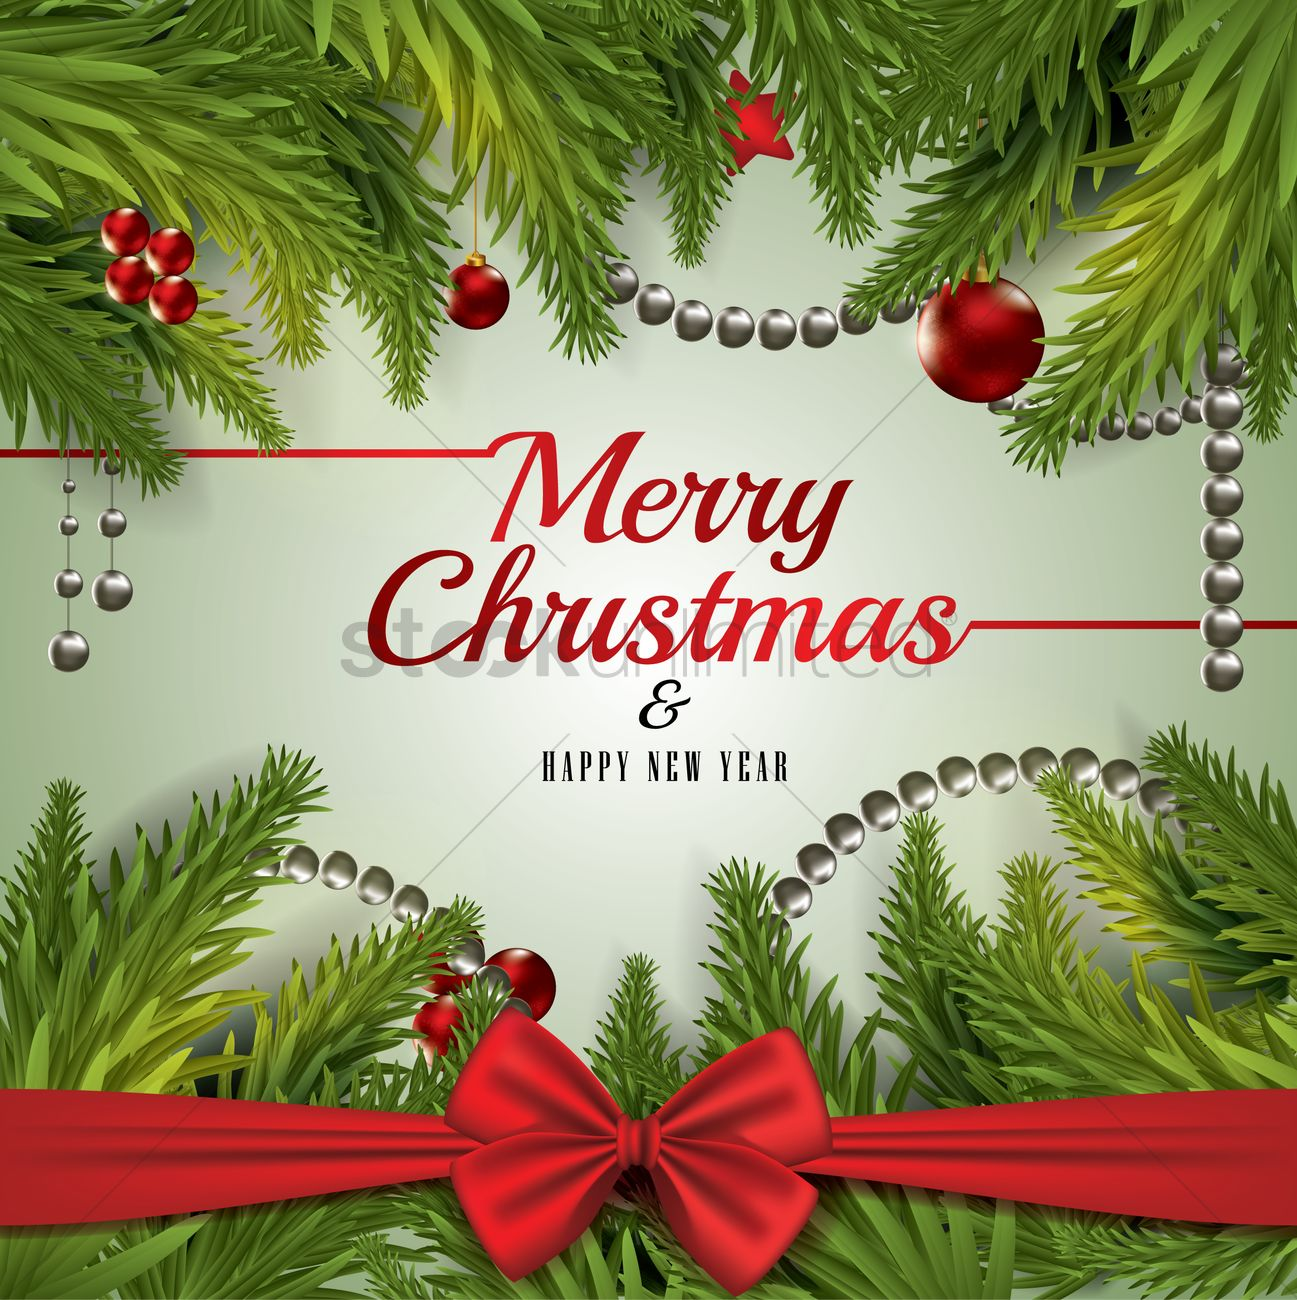 merry christmas and happy new year card design vector graphic